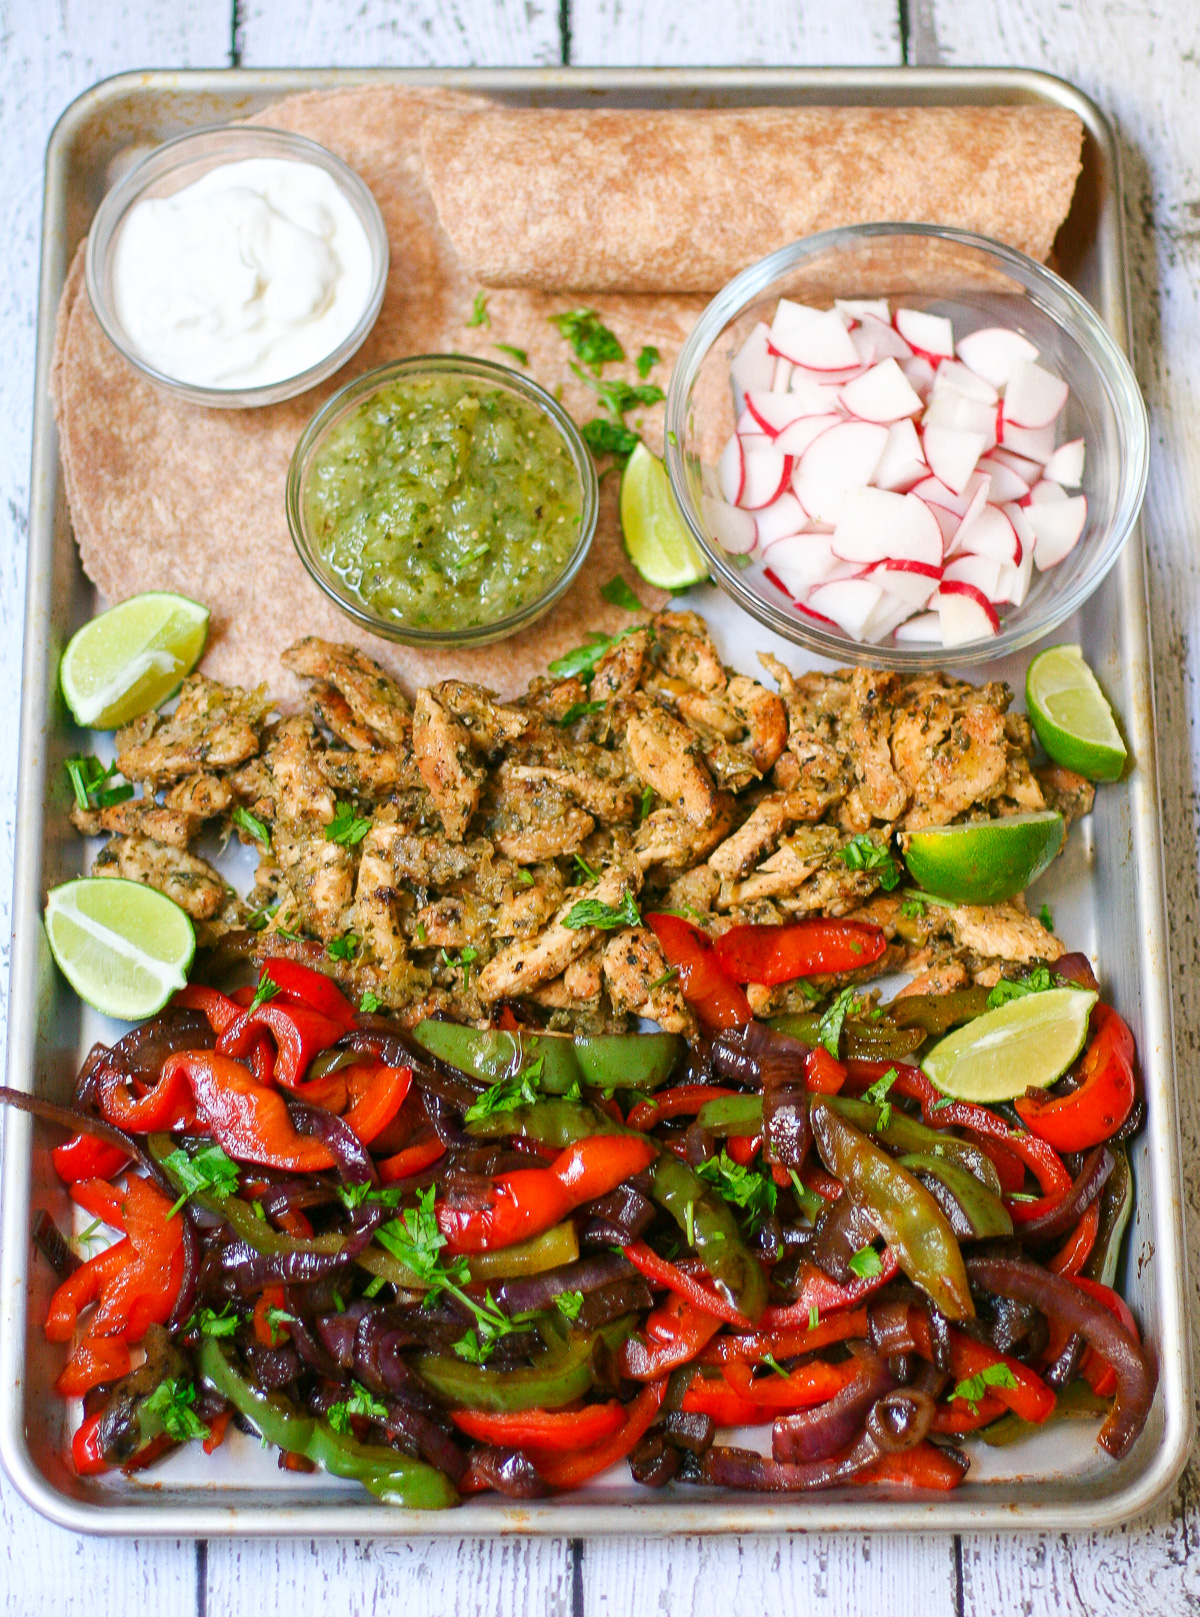 Easy Chicken Fajitas - How to Make The Easiest Way